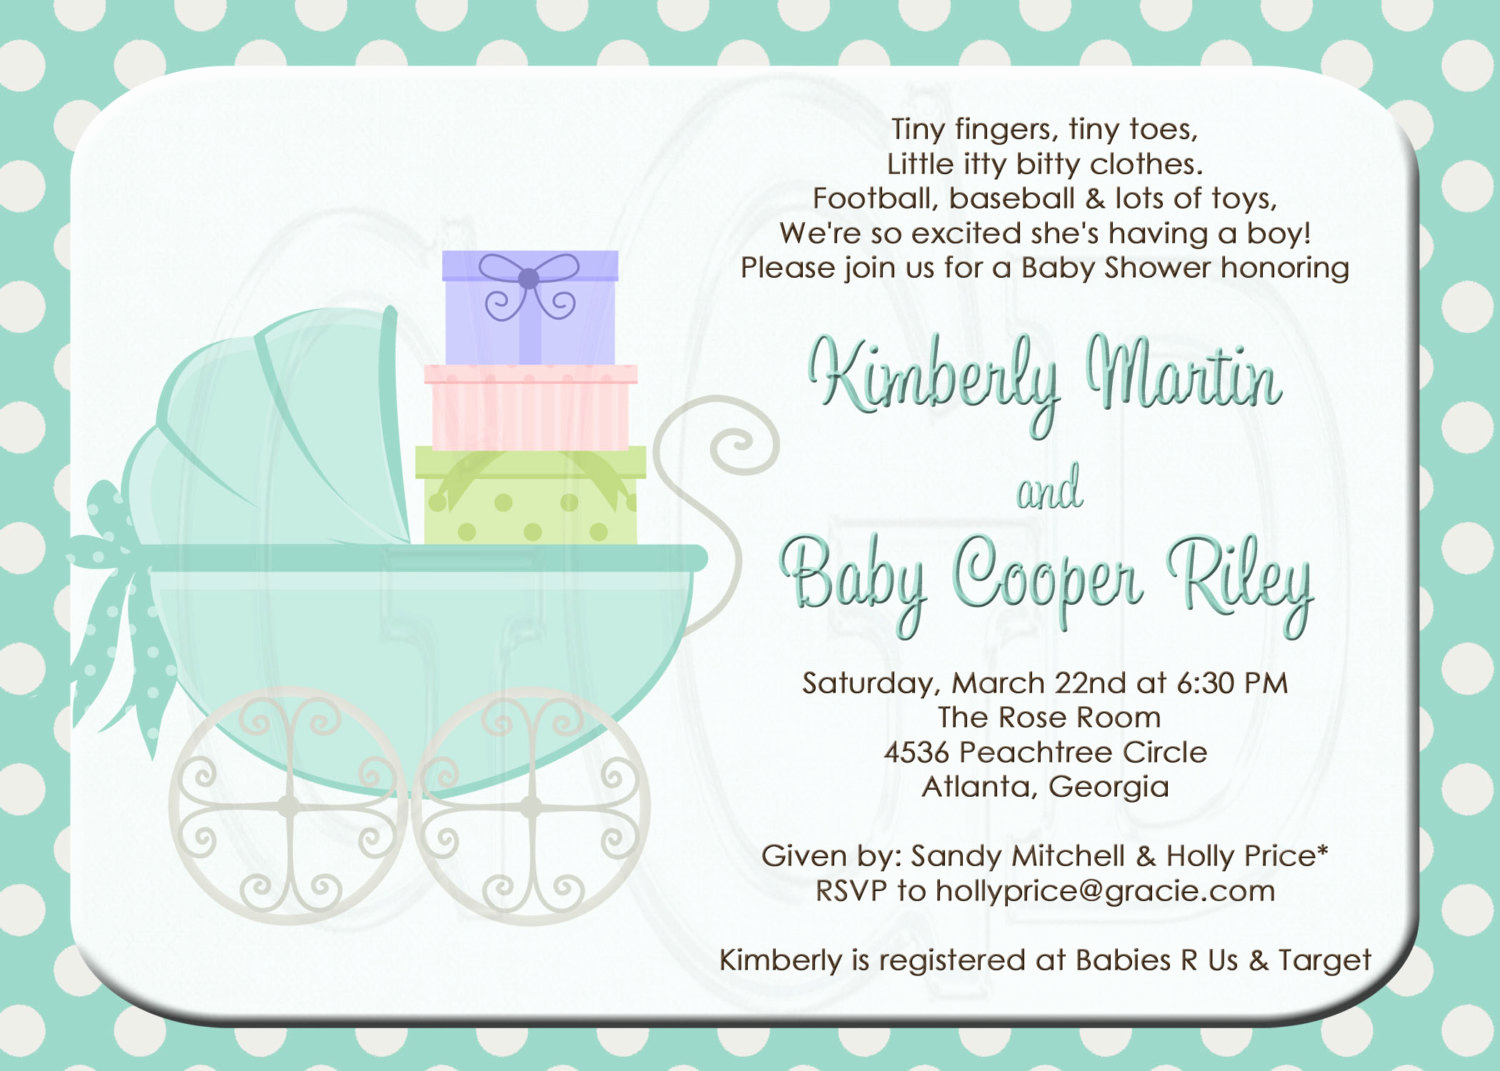 2nd Baby Shower Invitation Wording Best Of Baby Shower Invitation or Sprinkle for 2nd or 3rd Child